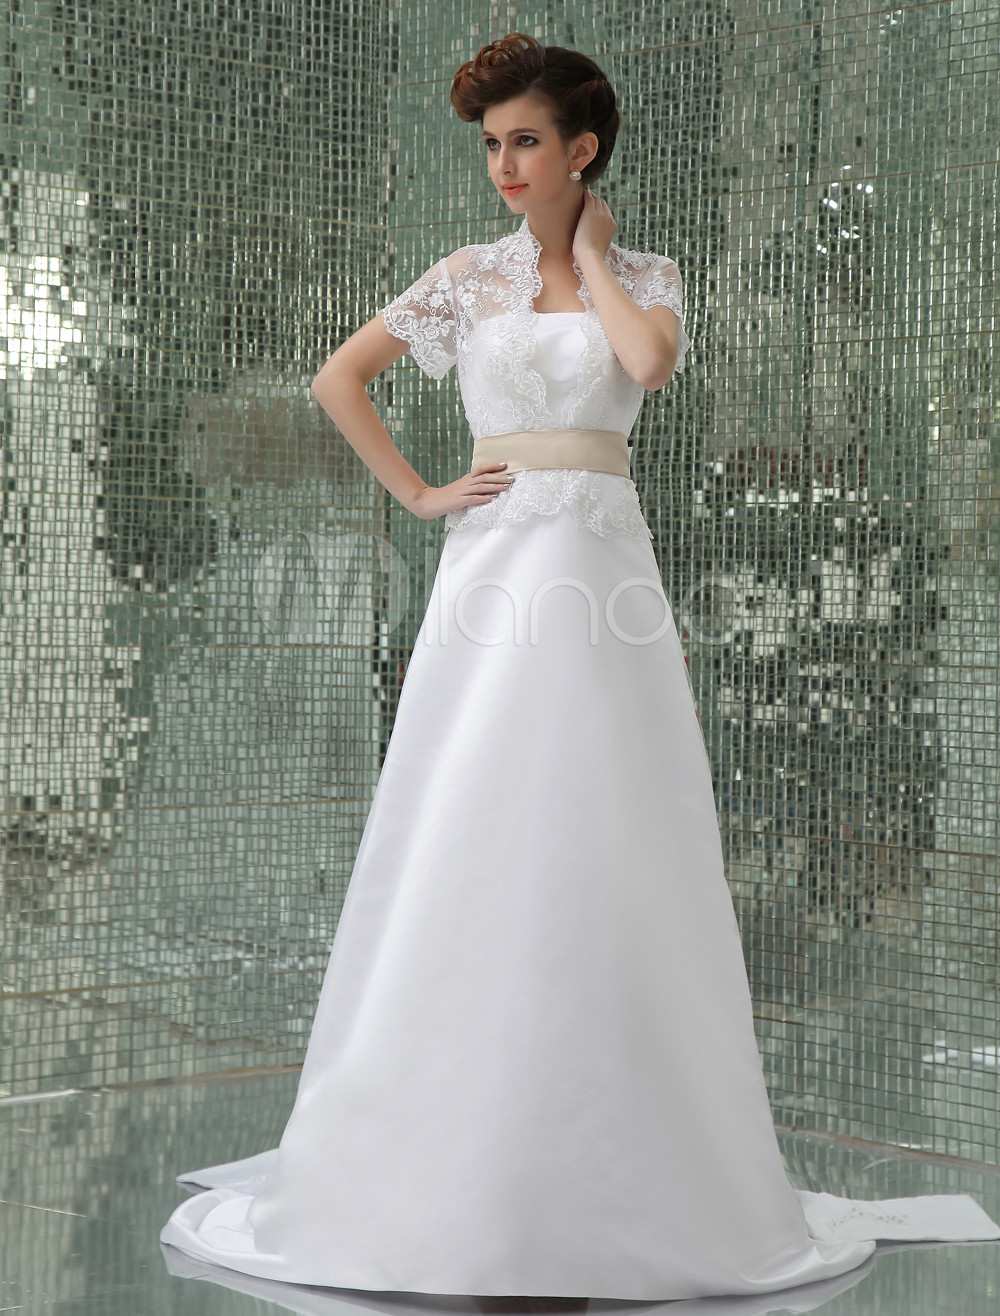 White A-Line Sash Beading Applique Lace Pongee Satin Wedding Dress ...